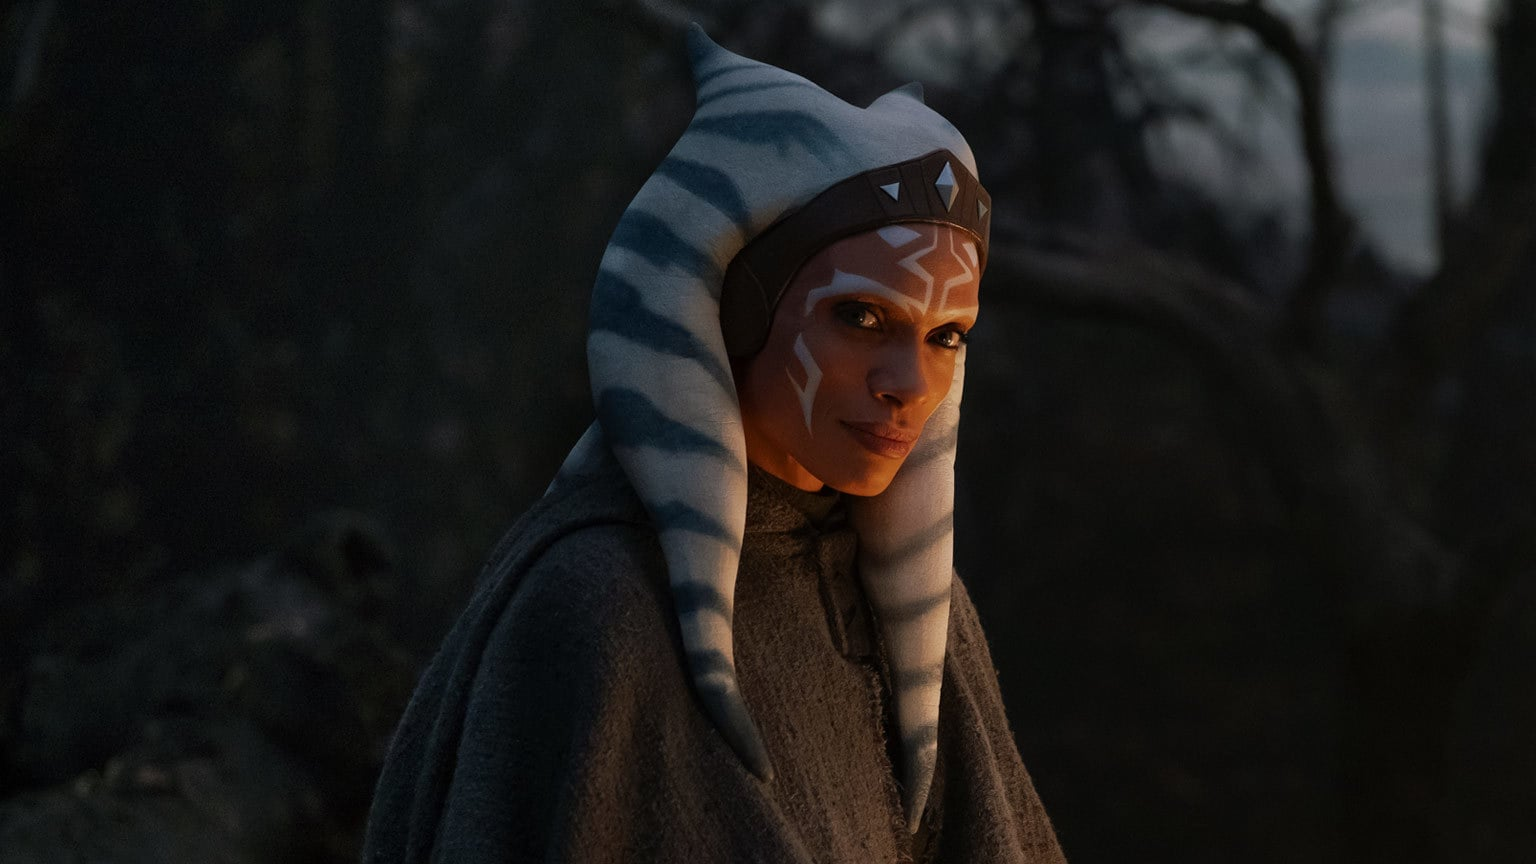 The Best of the Jedi: Rosario Dawson on Bringing Ahsoka Tano to Live-Action and The Mandalorian